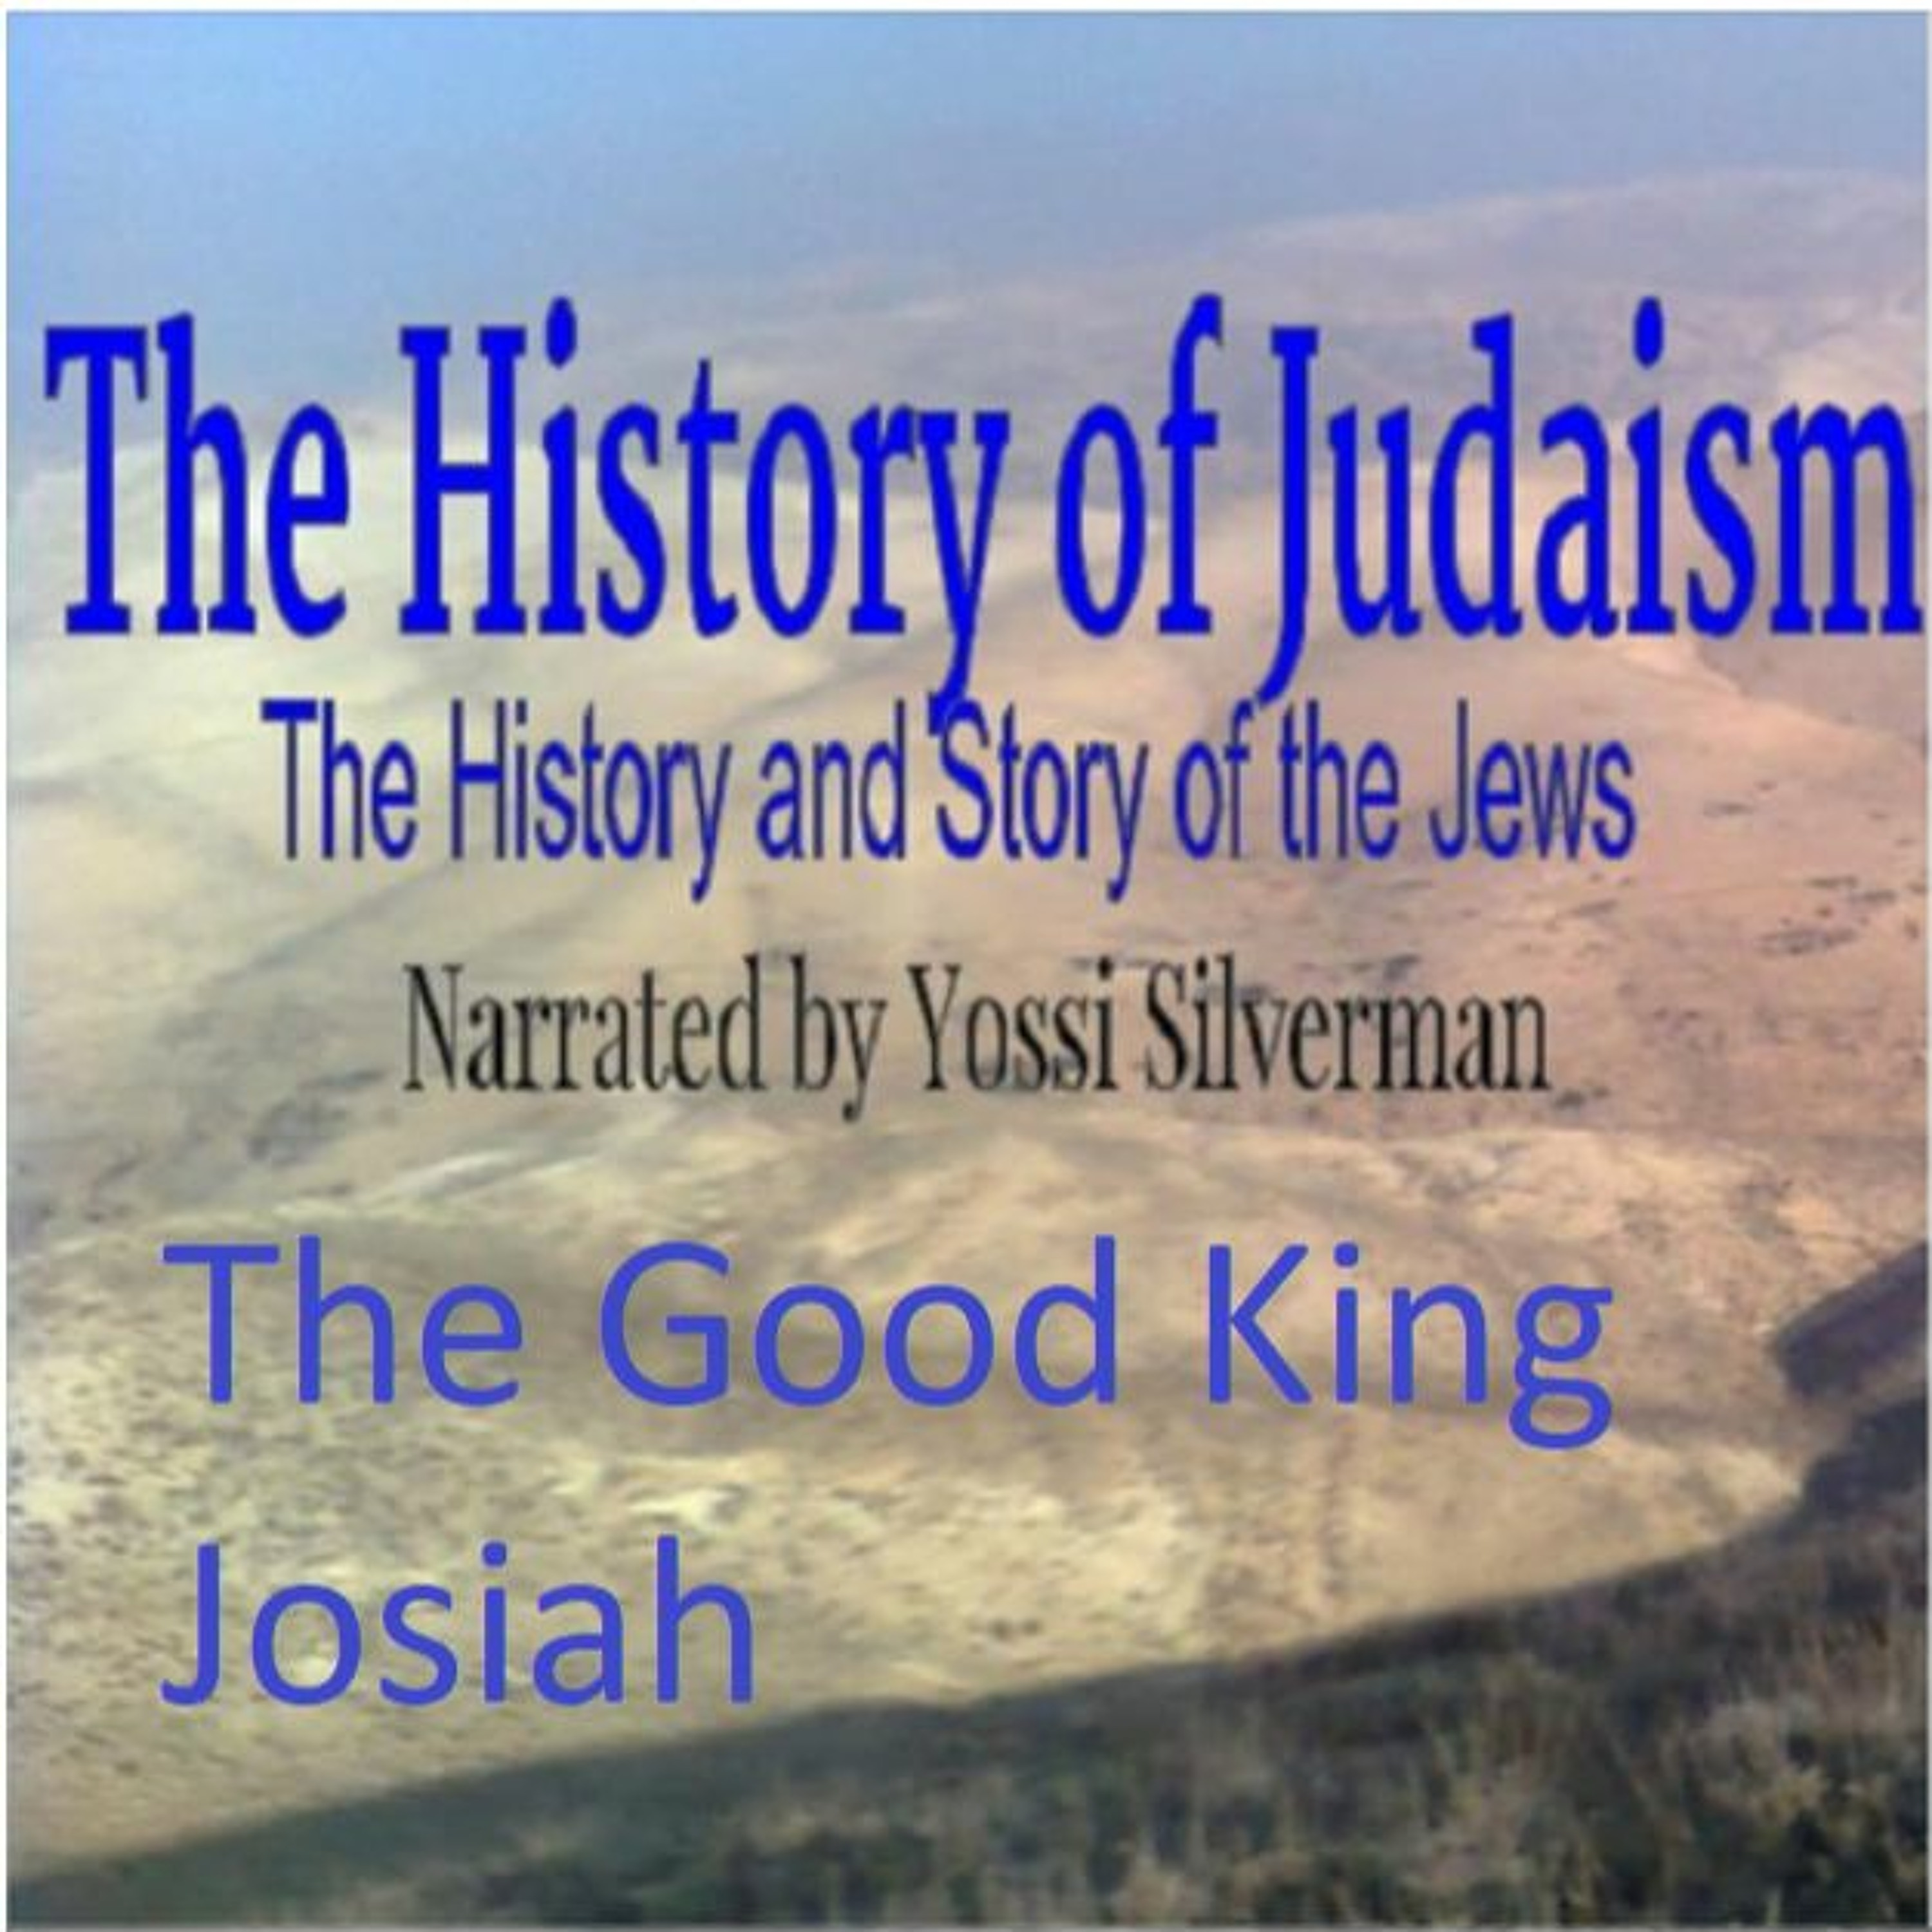 10. The Search for the Evil King: The Good King Josiah